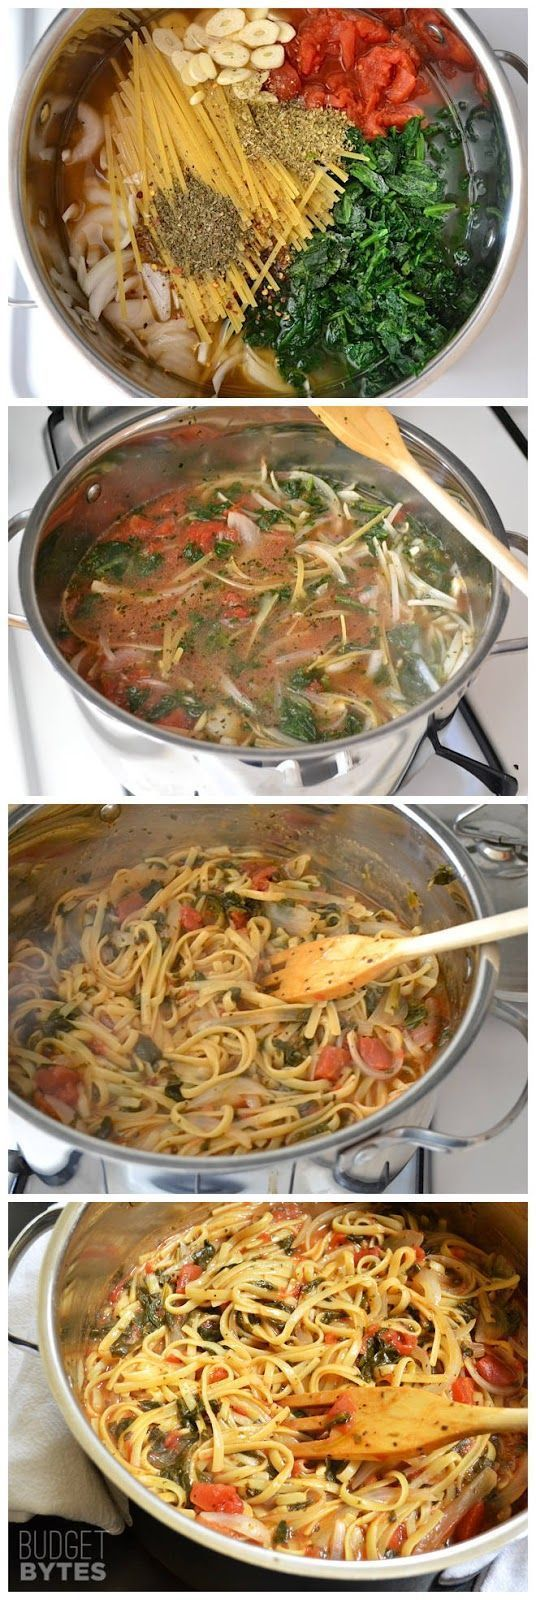 Italian Wonderpot:  4 cups vegetable broth 2 Tbsp olive oil 12 oz. fettuccine 8 oz. frozen chopped spinach 1 (28 oz.) can diced tomatoes 1 medium onion 4 cloves garlic ½ Tbsp dried basil ½ Tbsp dried oregano ¼ tsp red pepper flakes freshly cracked pepper to taste 2 oz. feta cheese.